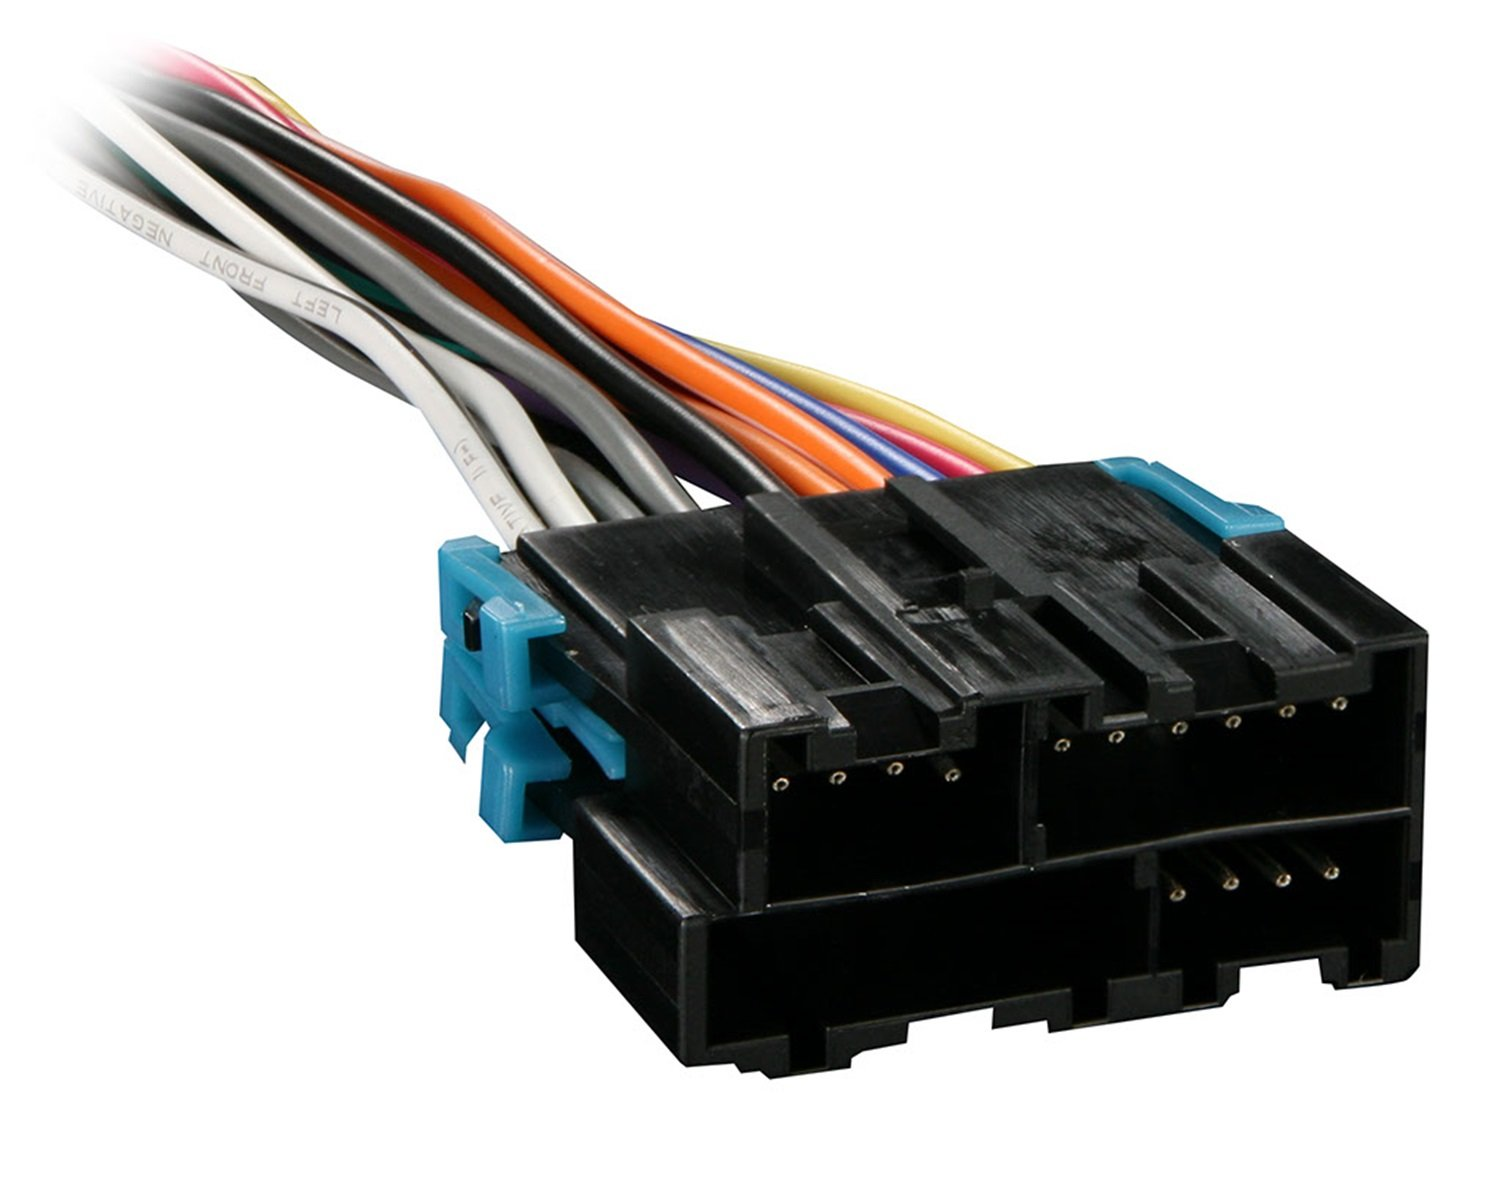 61 CwjZt1hL._SL1500_ radio wiring harnesses amazon com wiring harness for car stereo installation at crackthecode.co